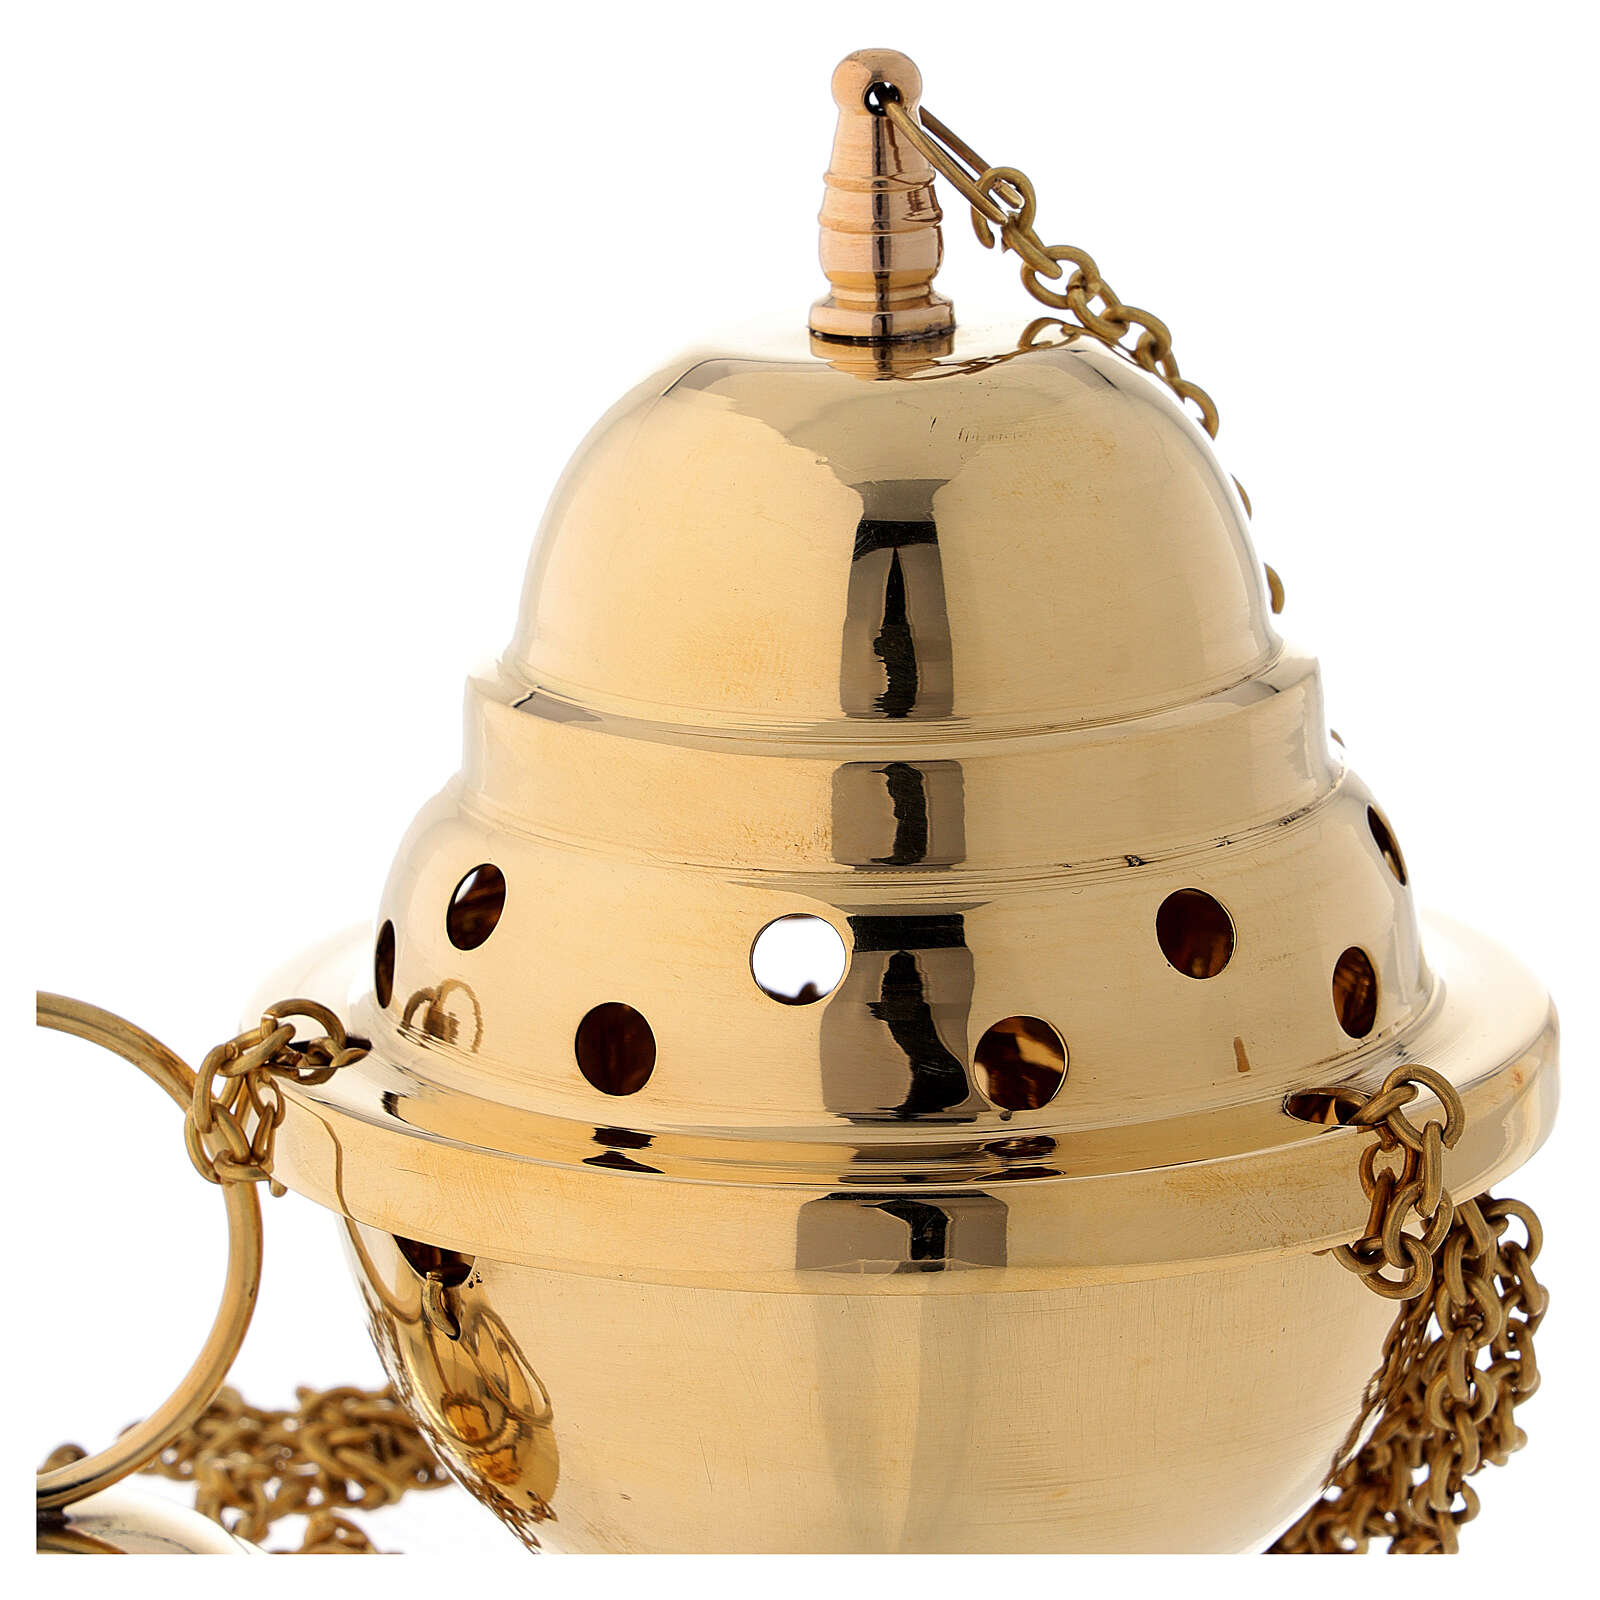 Gold plated brass thurible 6 in 3